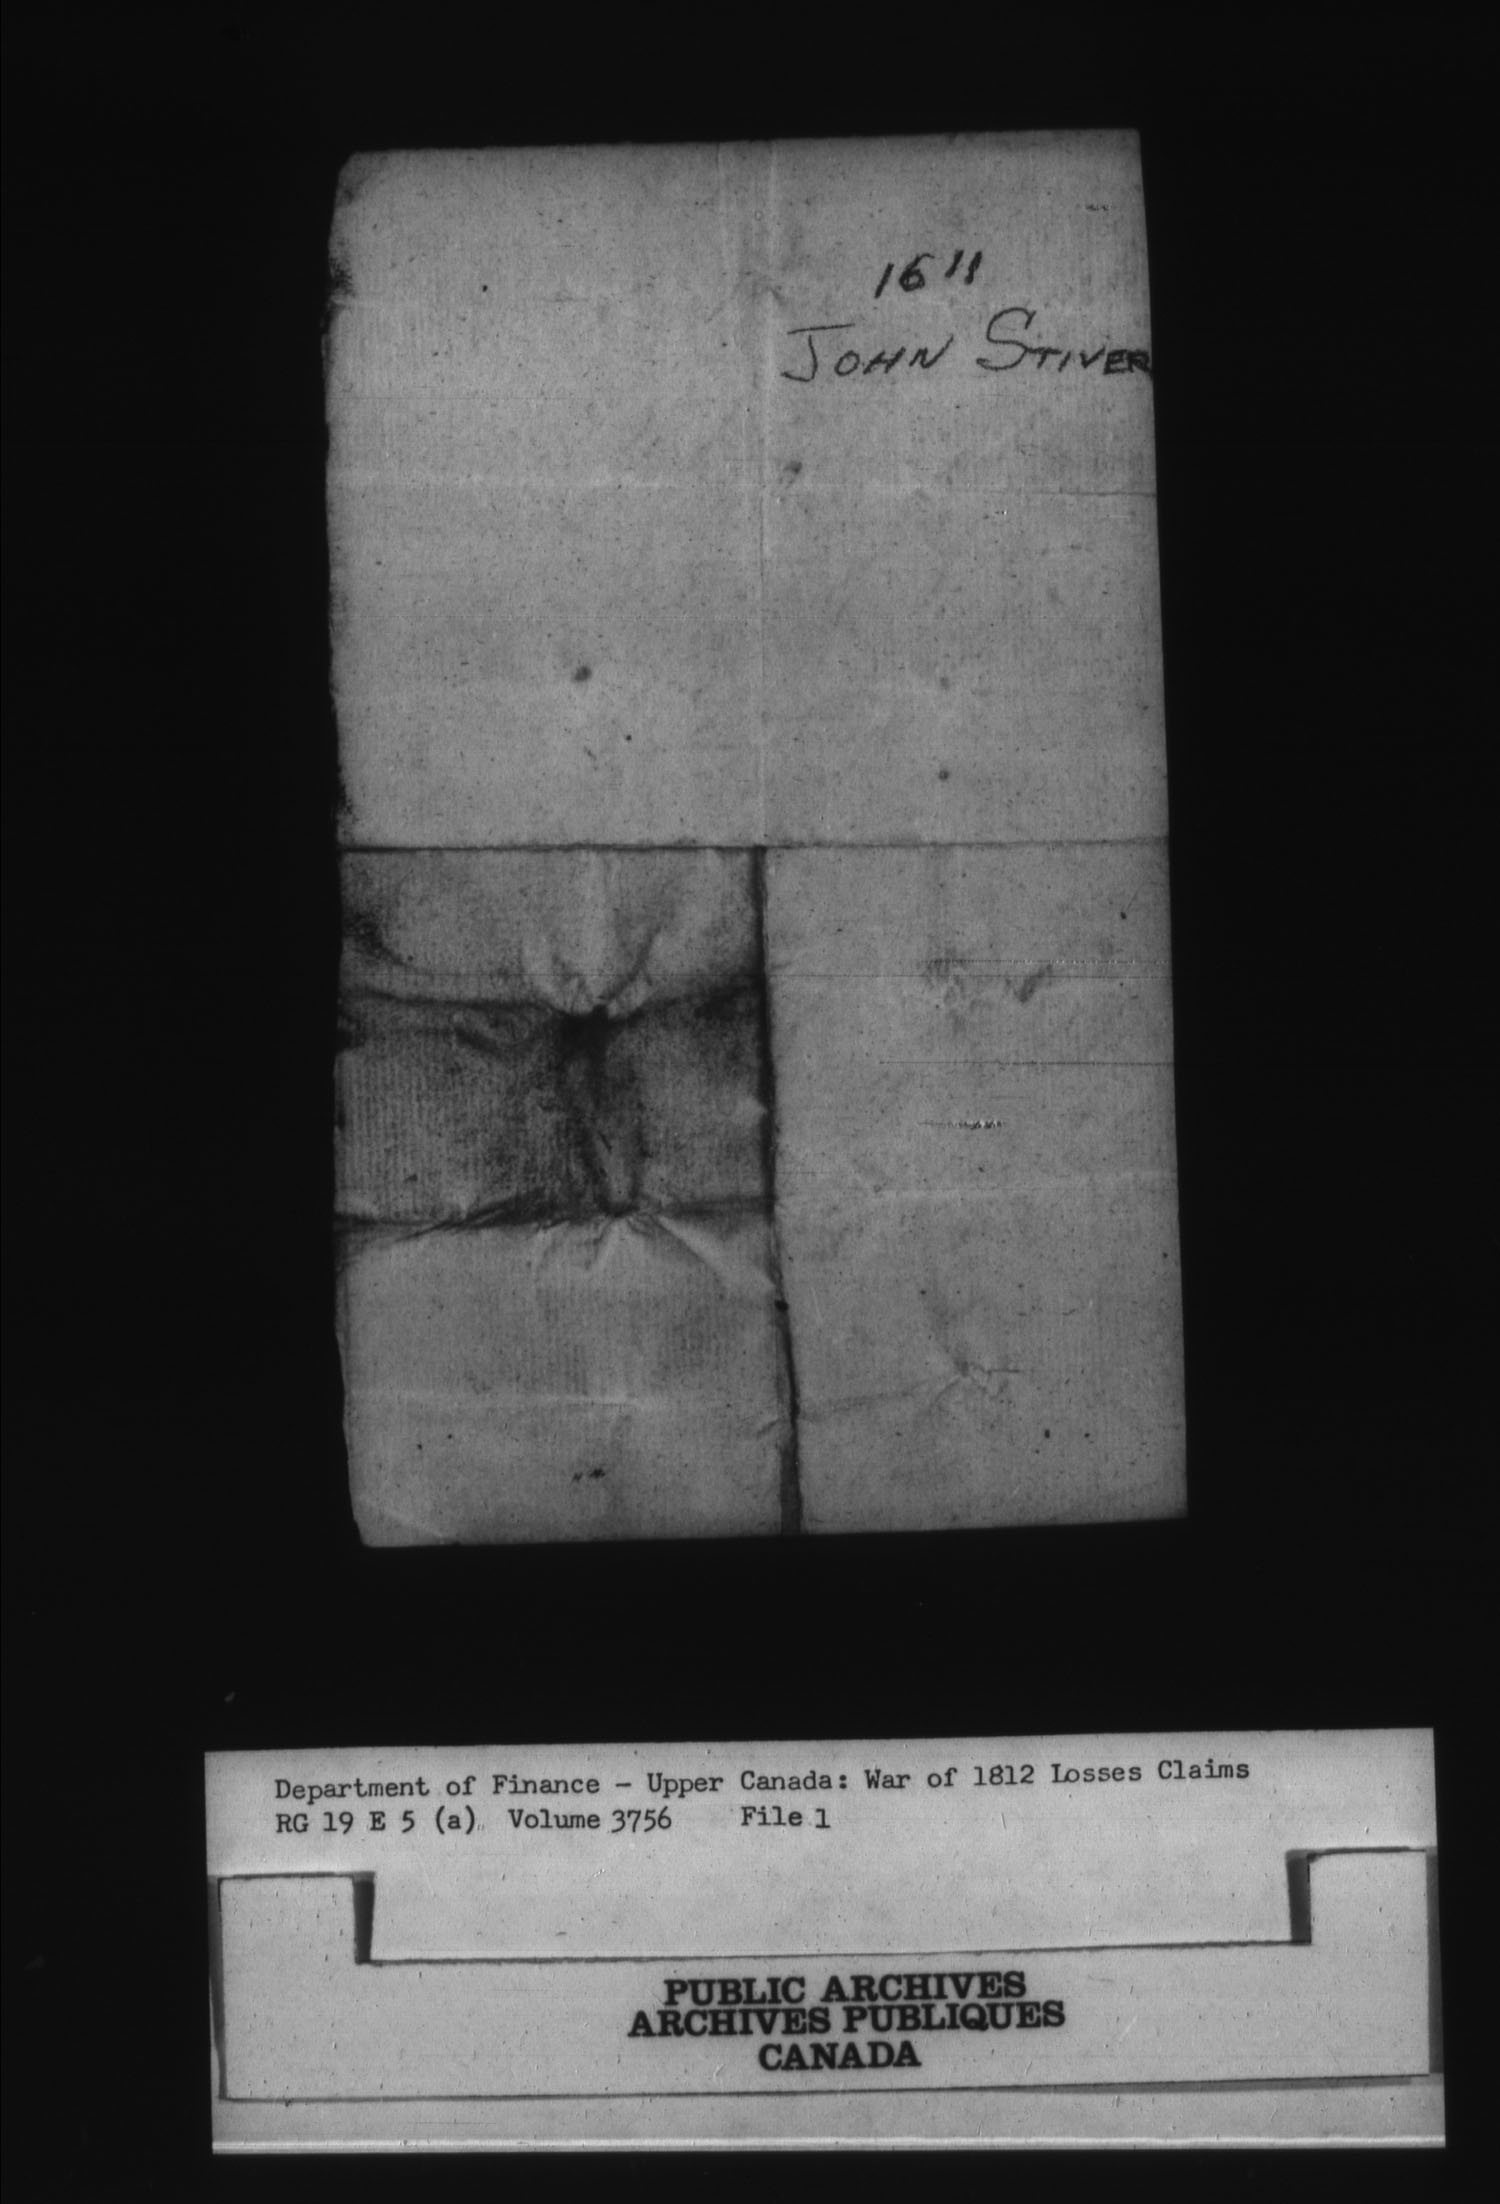 Title: War of 1812: Board of Claims for Losses, 1813-1848, RG 19 E5A - Mikan Number: 139215 - Microform: t-1137